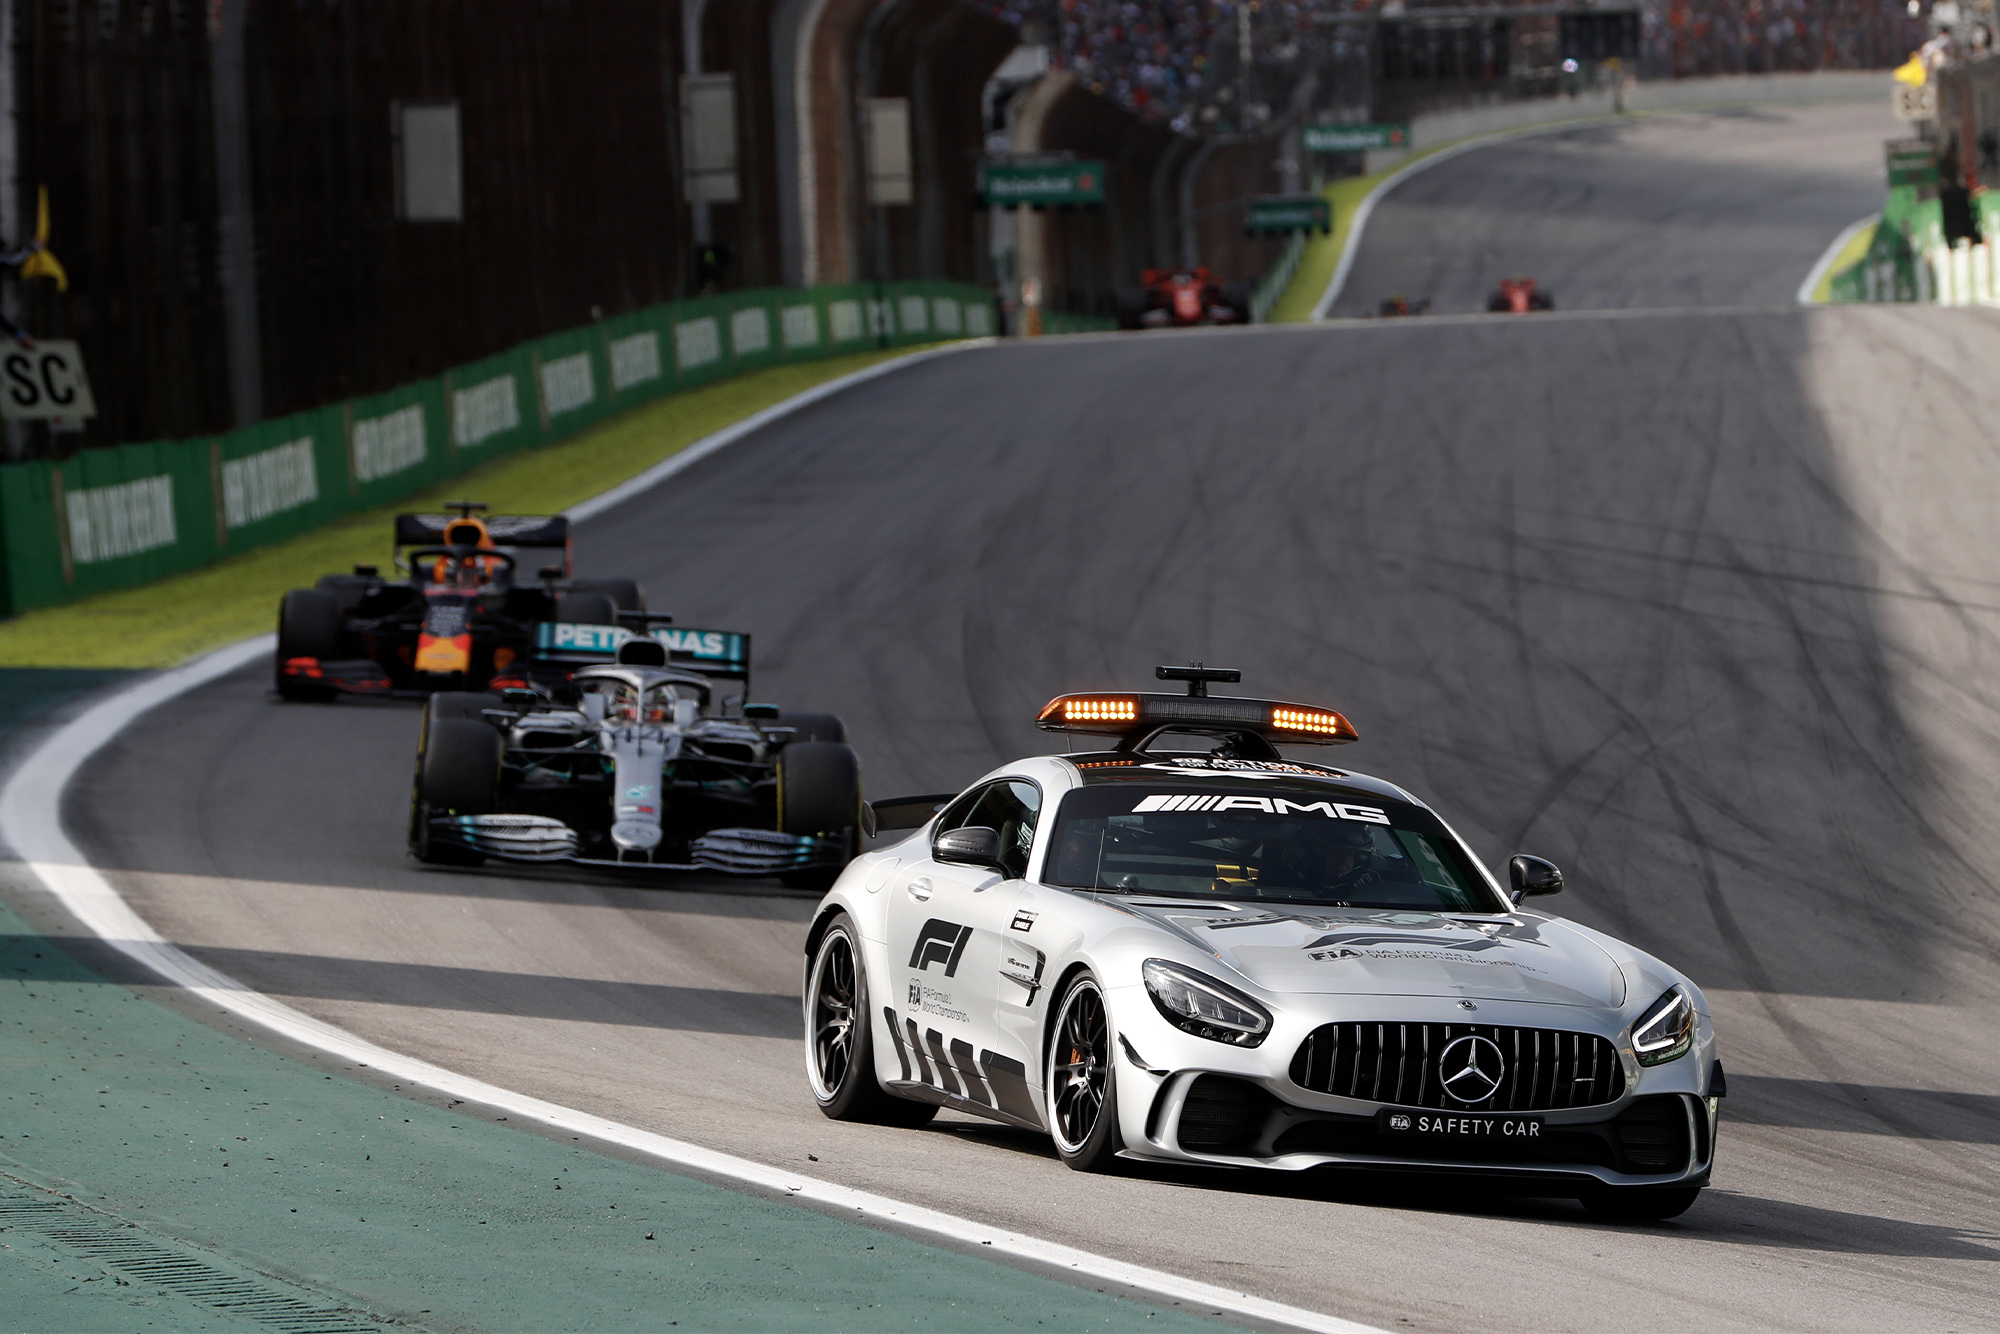 The Safety Car leads Lewis Hamilton and Max Verstappen during the 2019 Brazilian Grand Prix